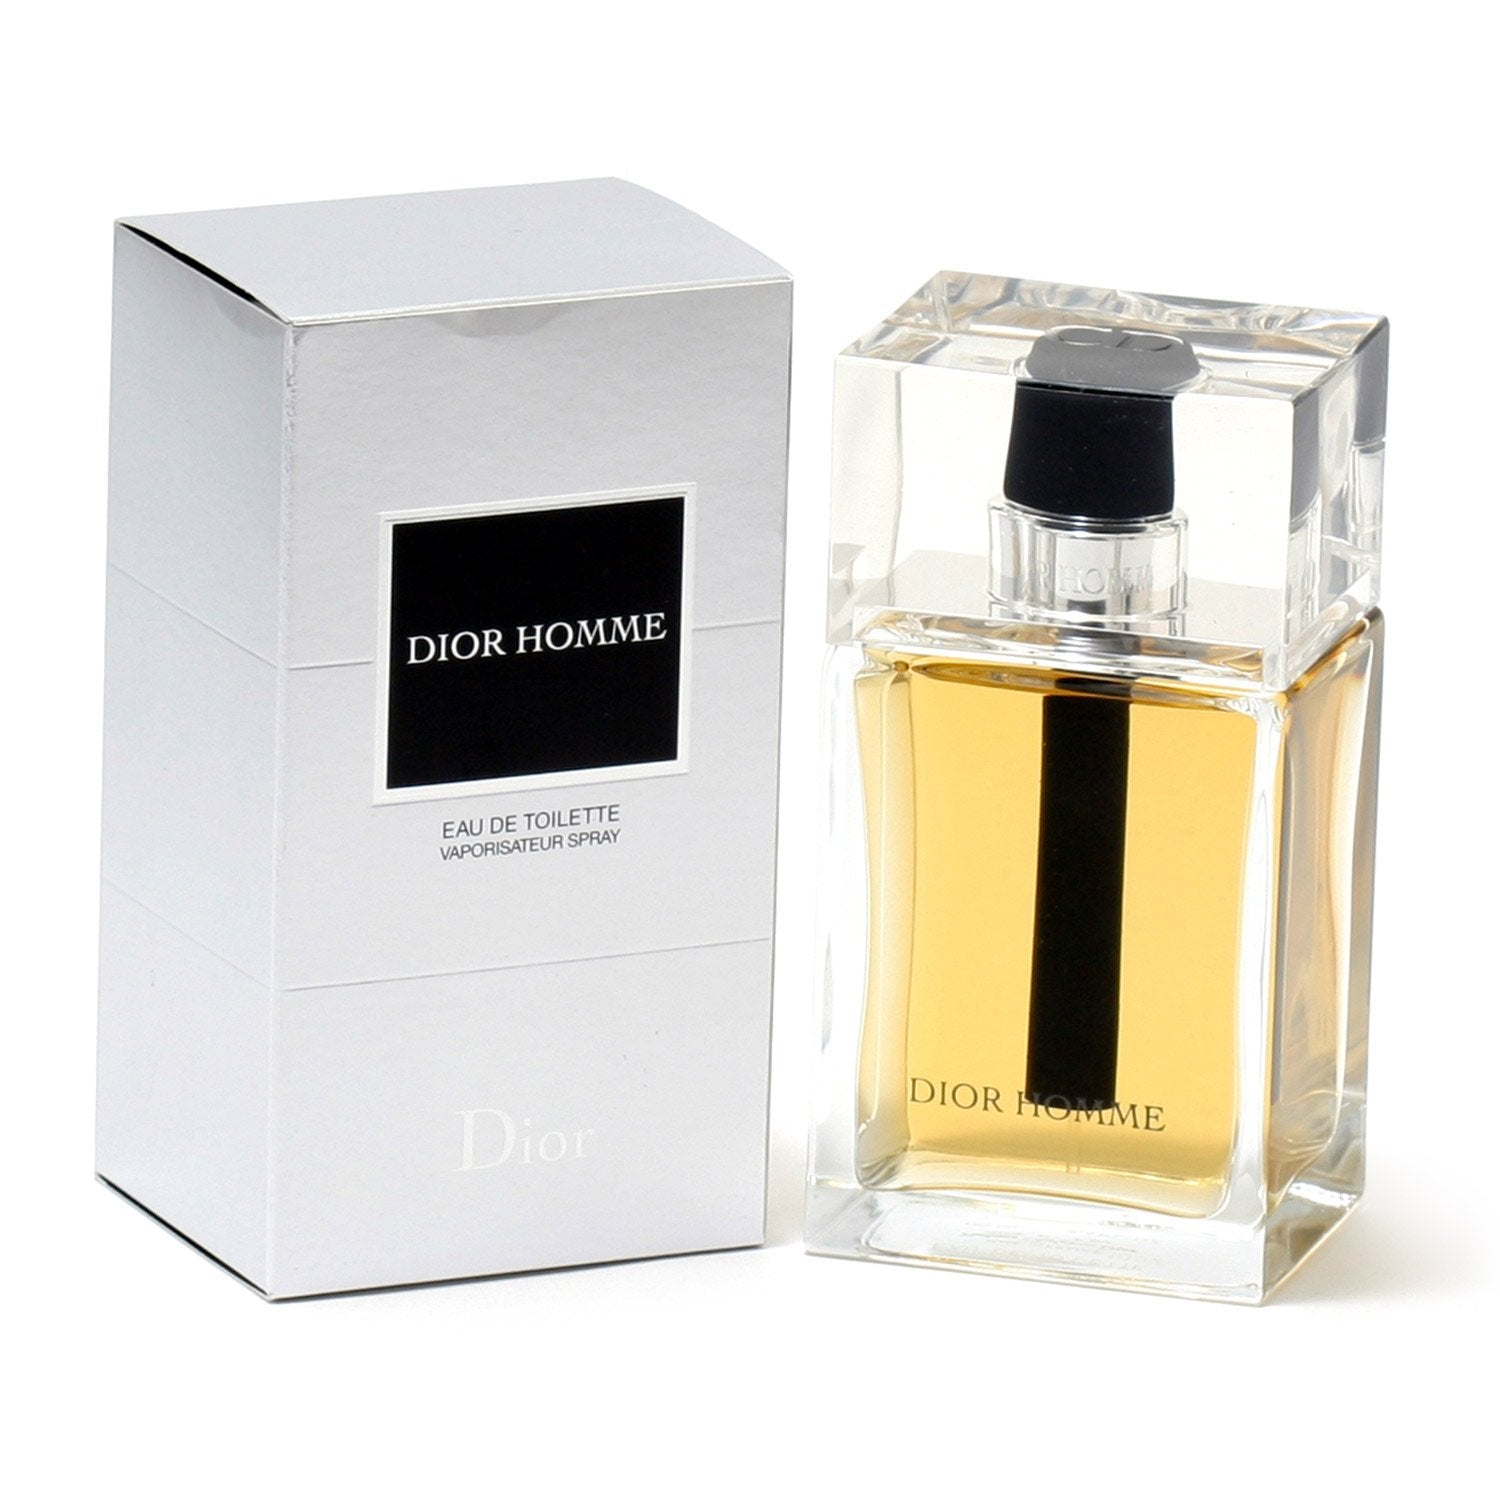 Cologne - DIOR HOMME BY CHRISTIAN DIOR - EAU DE TOILETTE SPRAY